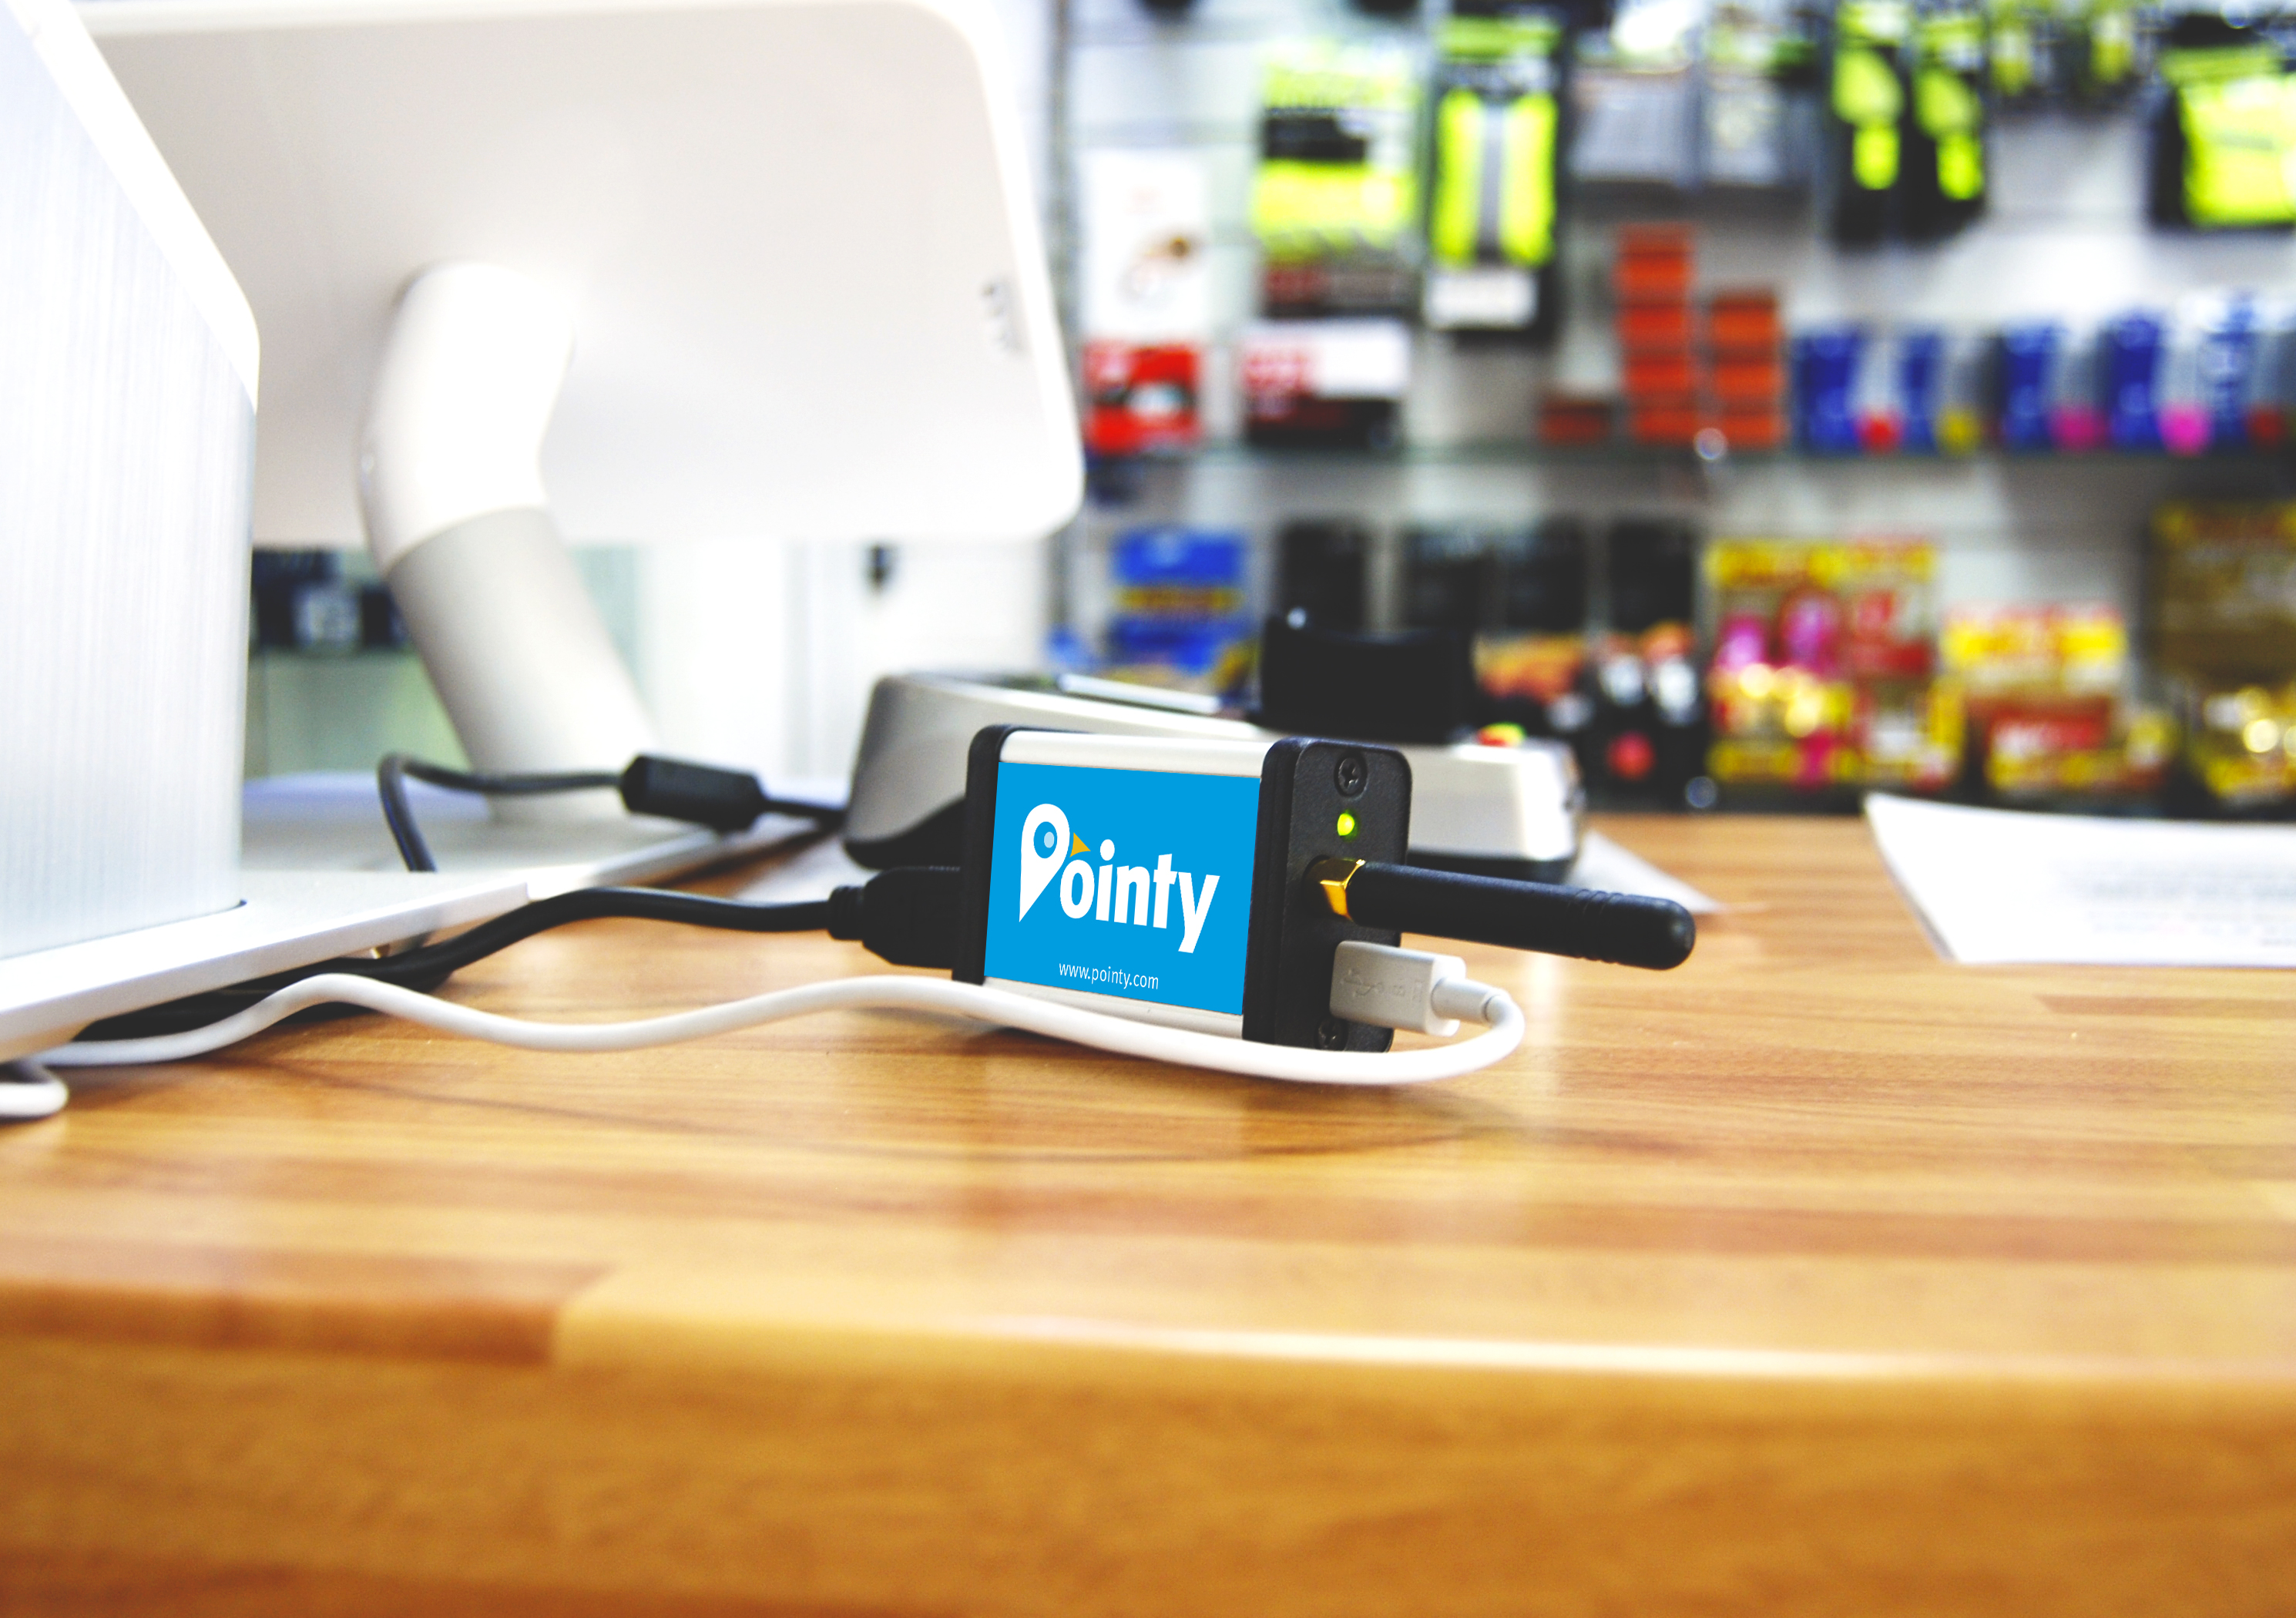 photo image Pointy raises $12 million to help bricks and mortar retailers battle Amazon